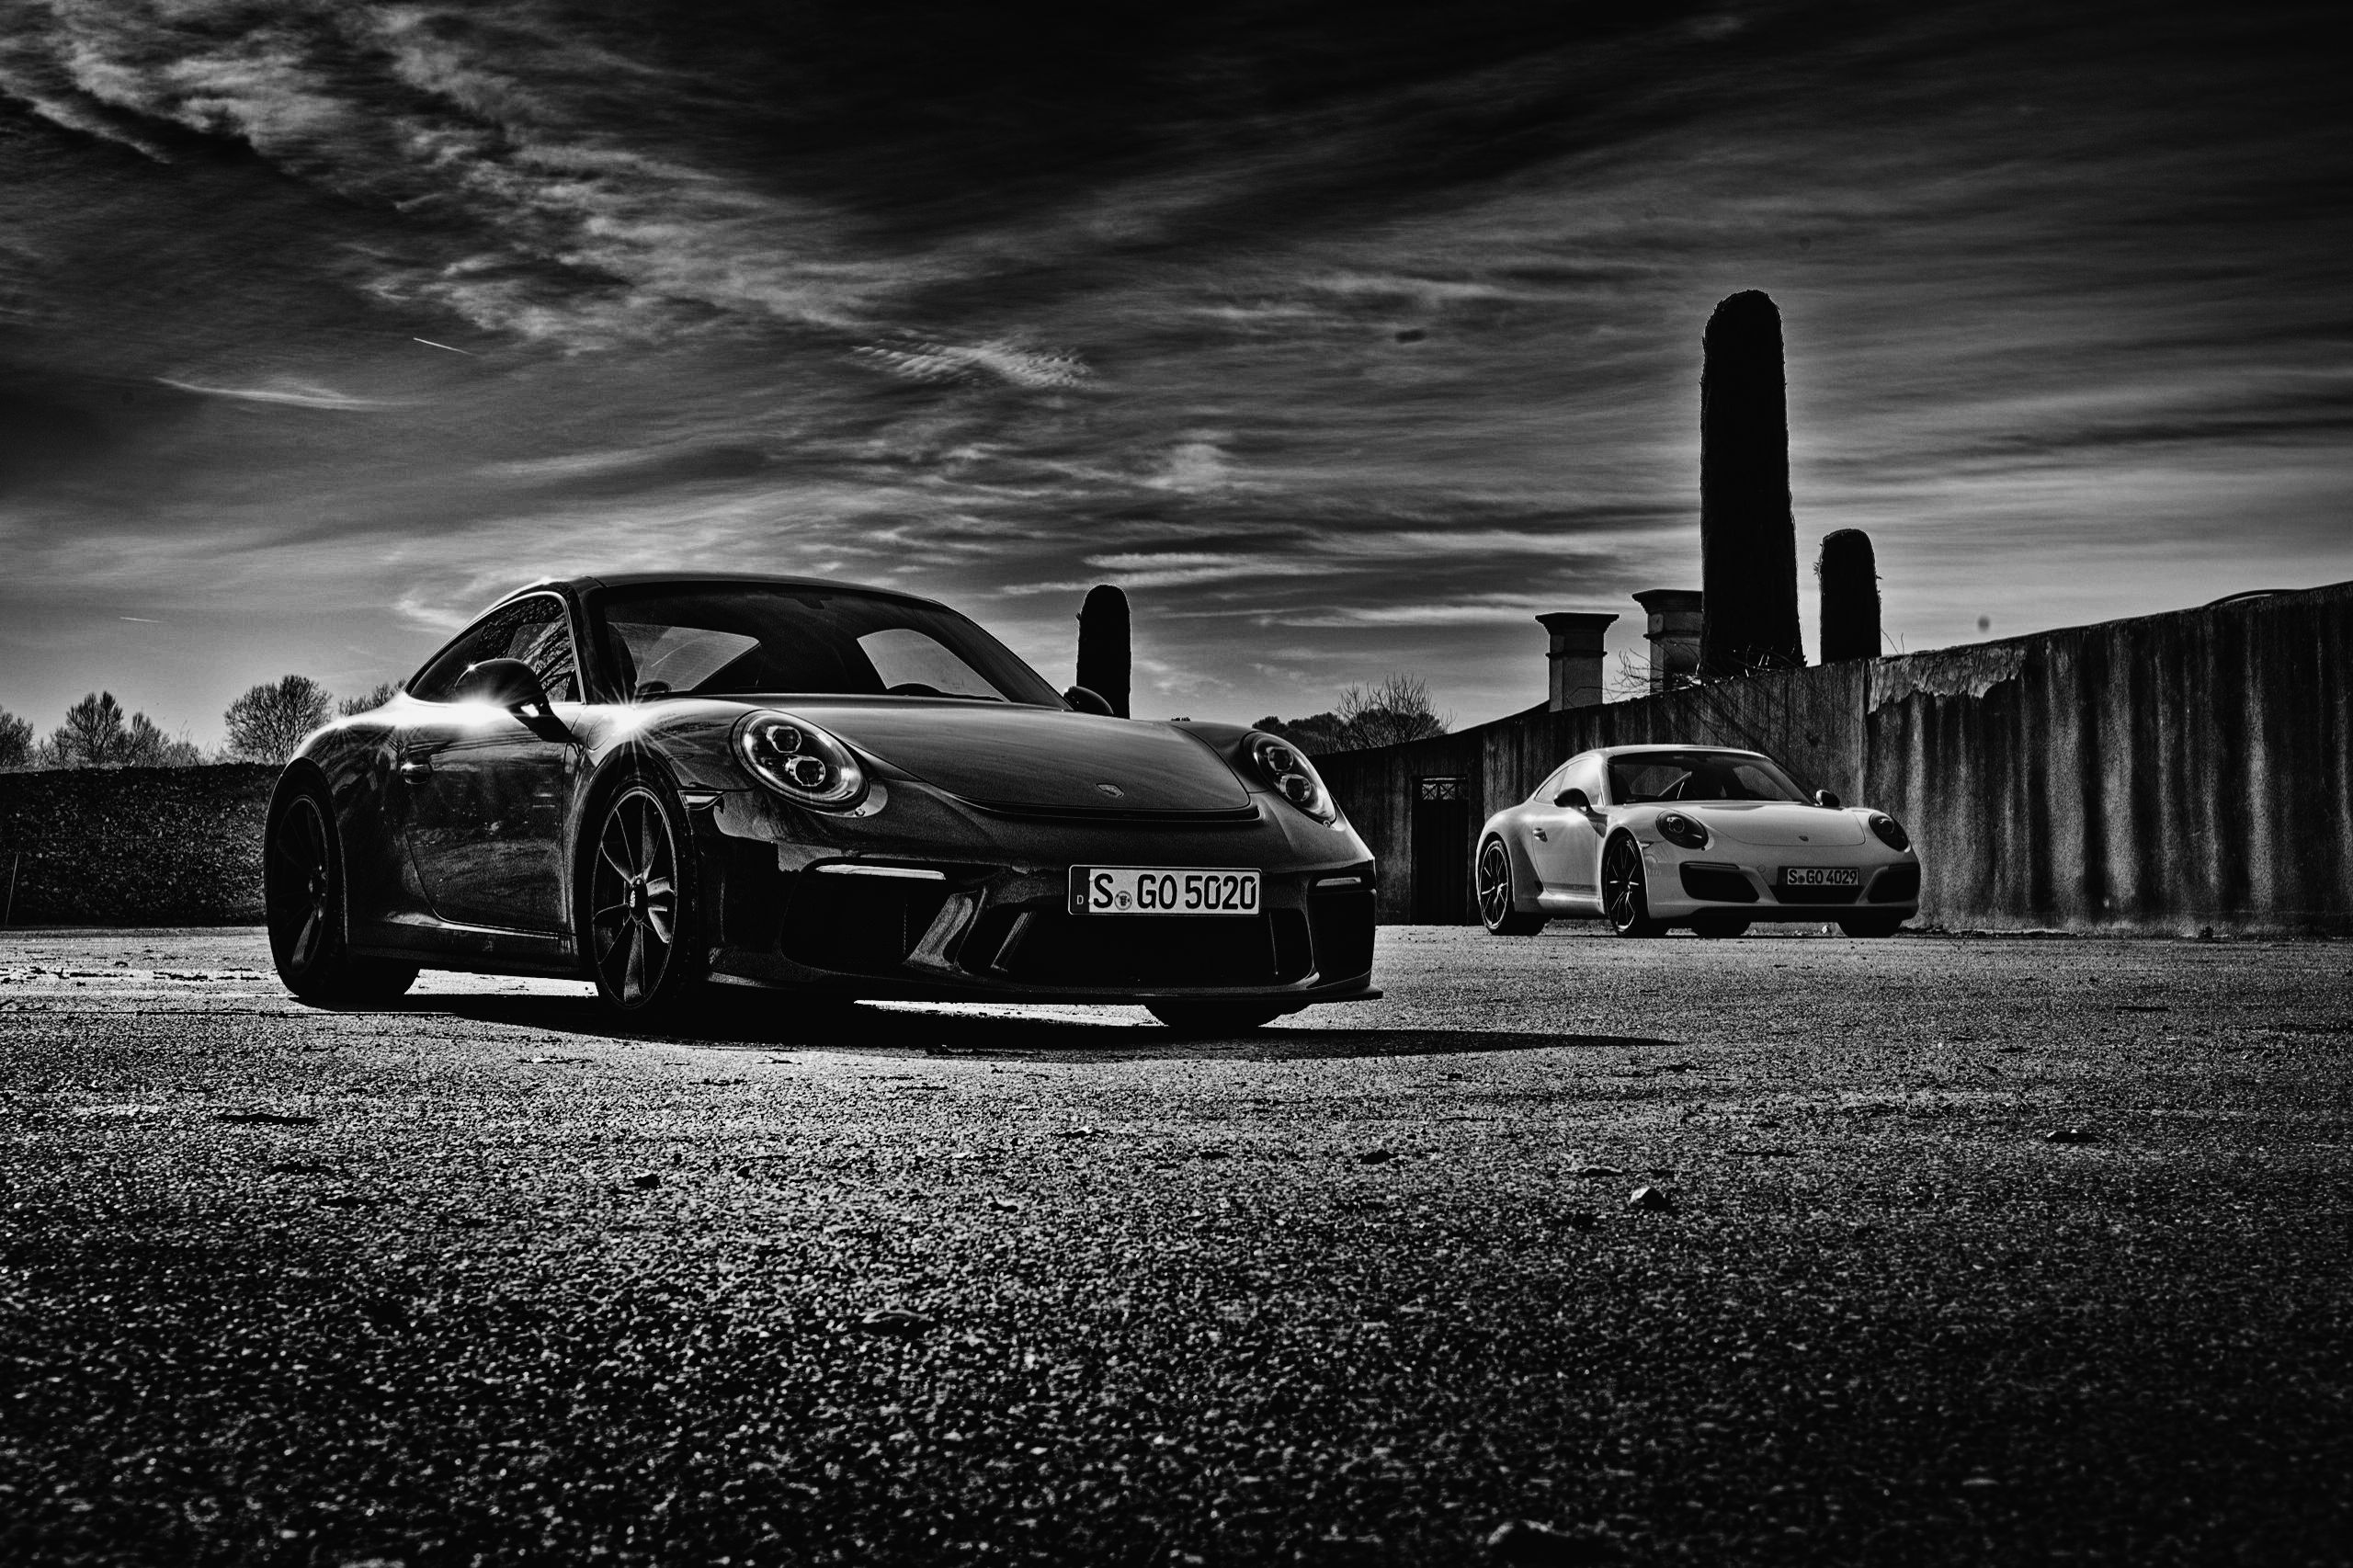 911 GT3 Touring Package, 911 Carrera T – 06.01.intv